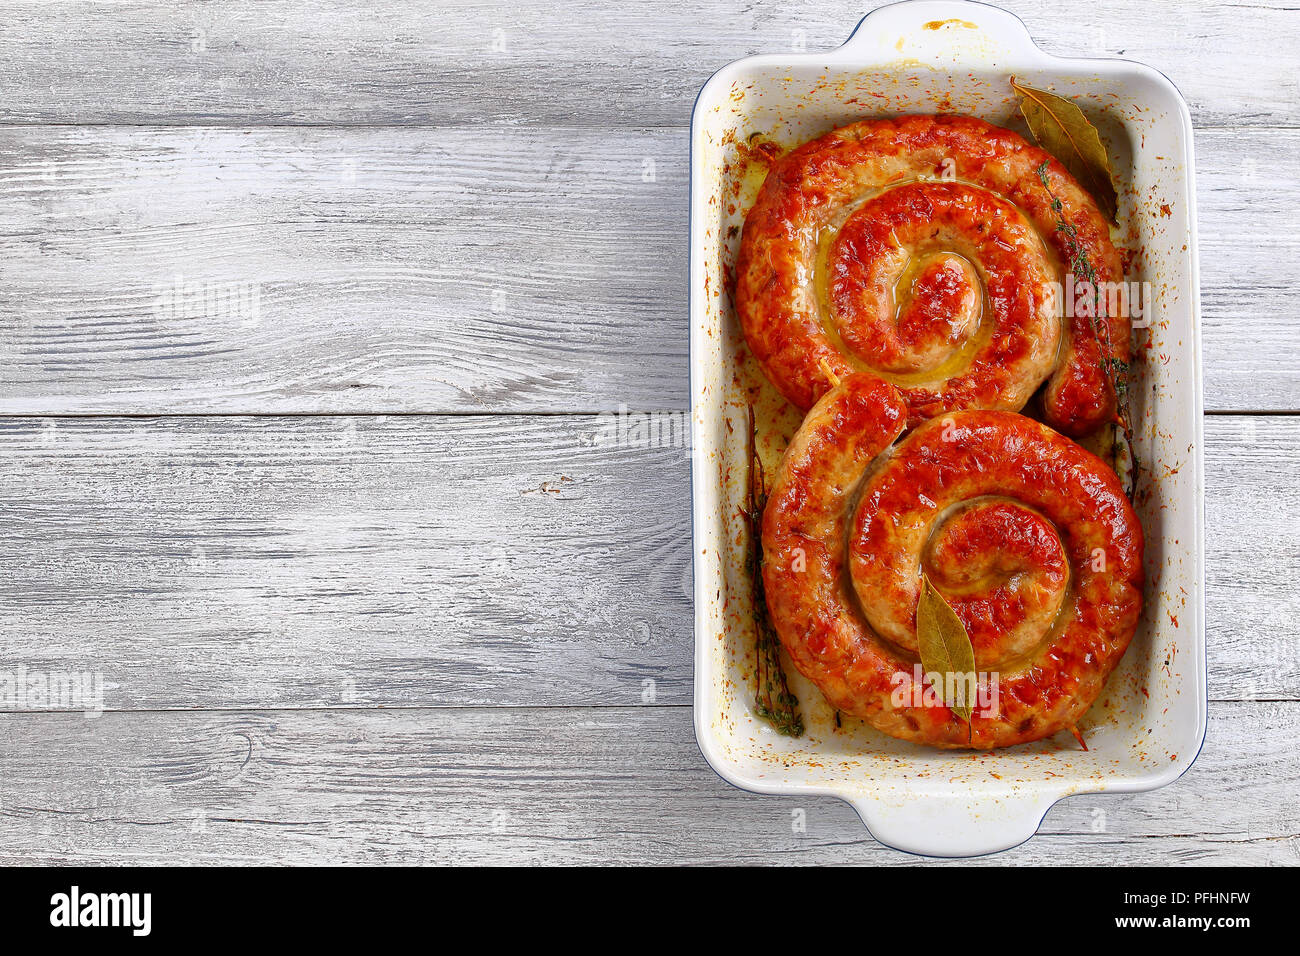 delicious german Bratwurst - round fried sausages on wooden skewers in roasting dish on old rustic wooden table, view from above, blank space left - Stock Image